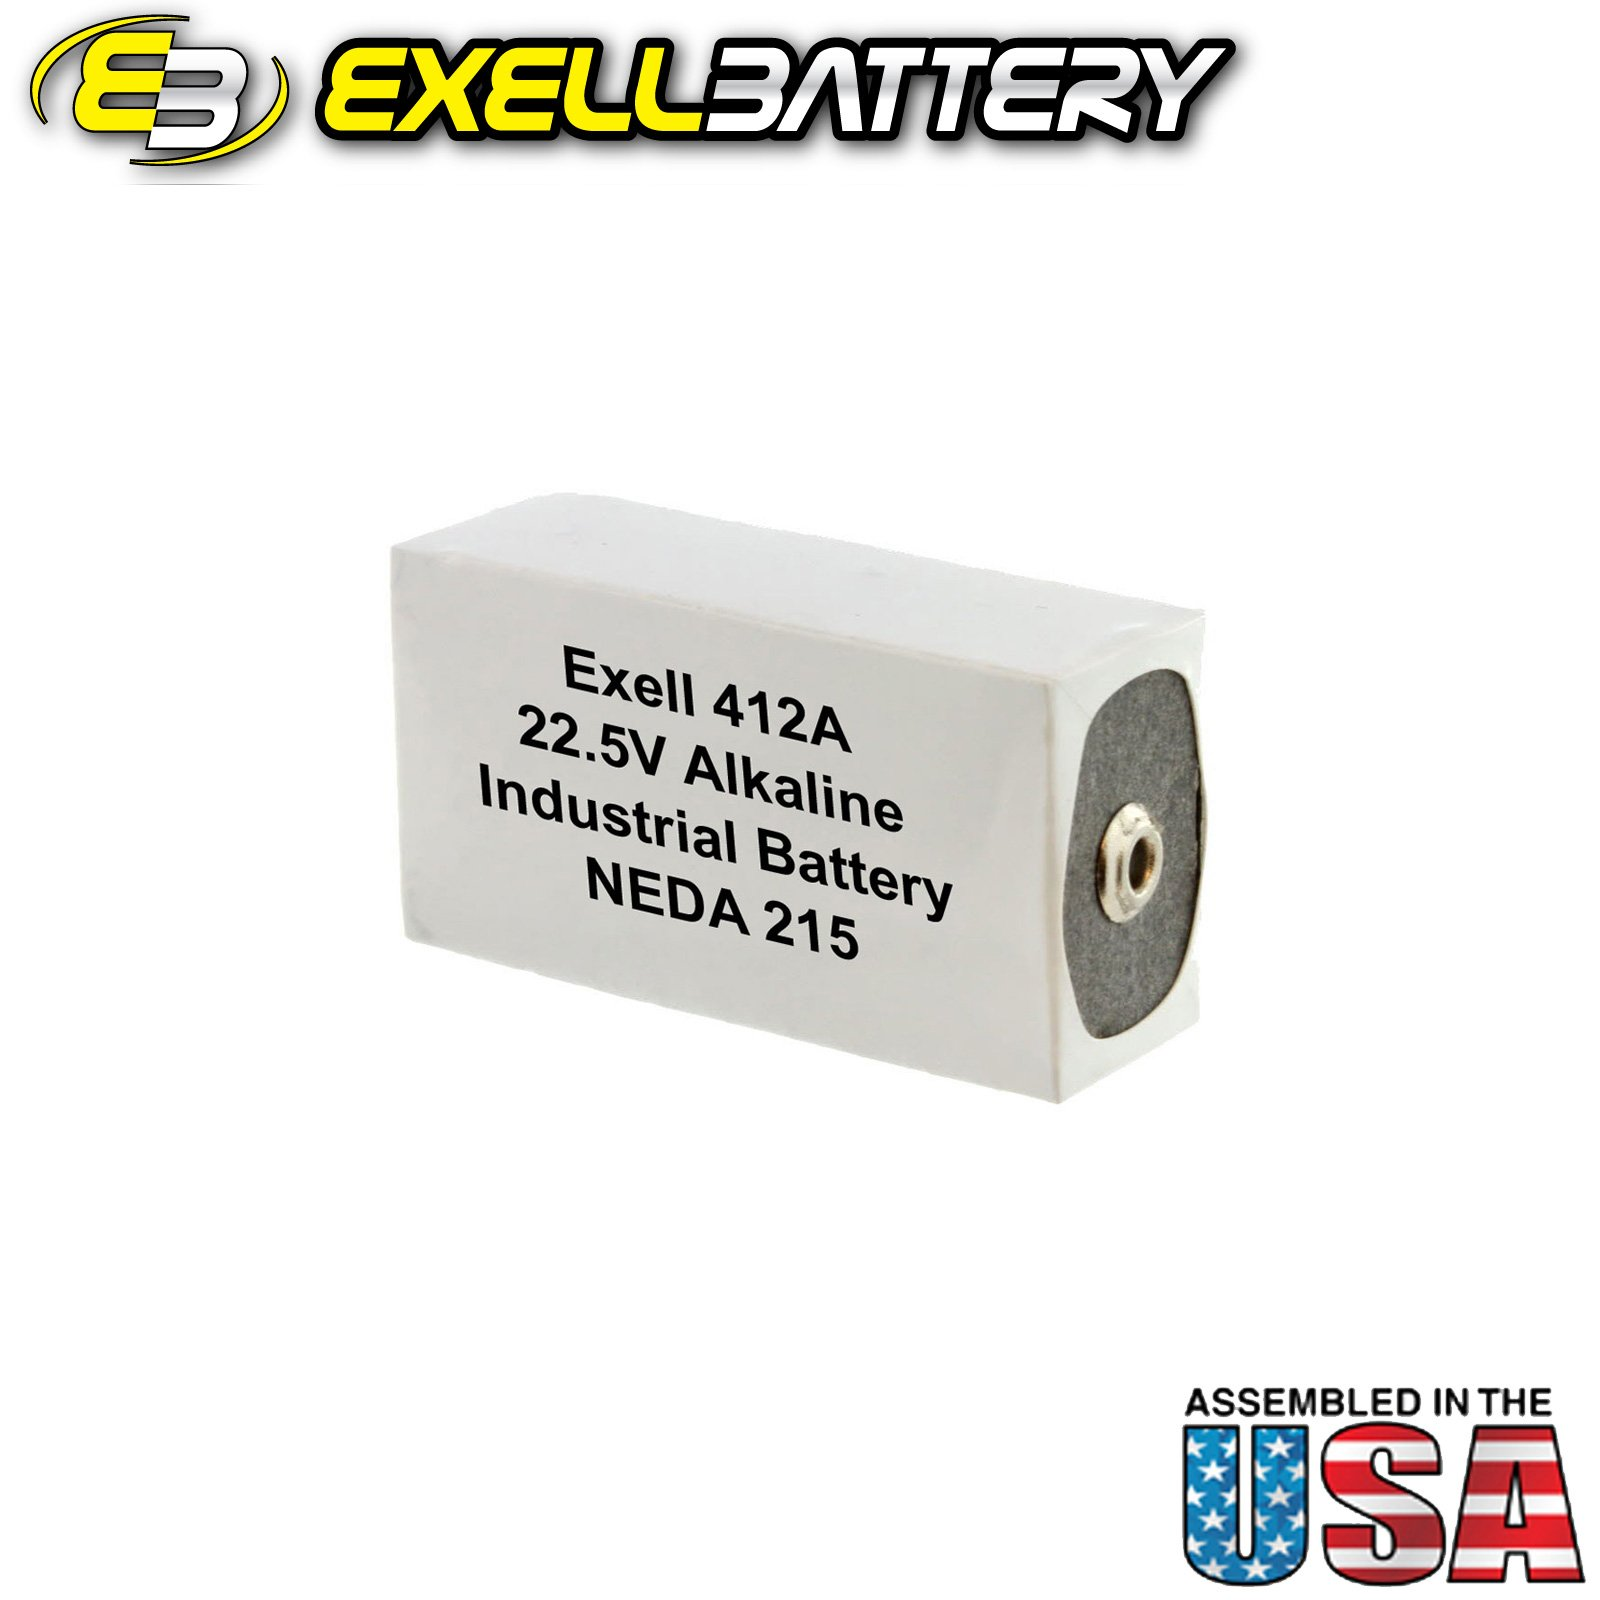 20pc Exell 412A Alkaline 22.5V Battery NEDA 215, 15F20, BLR122 by Exell Battery (Image #2)